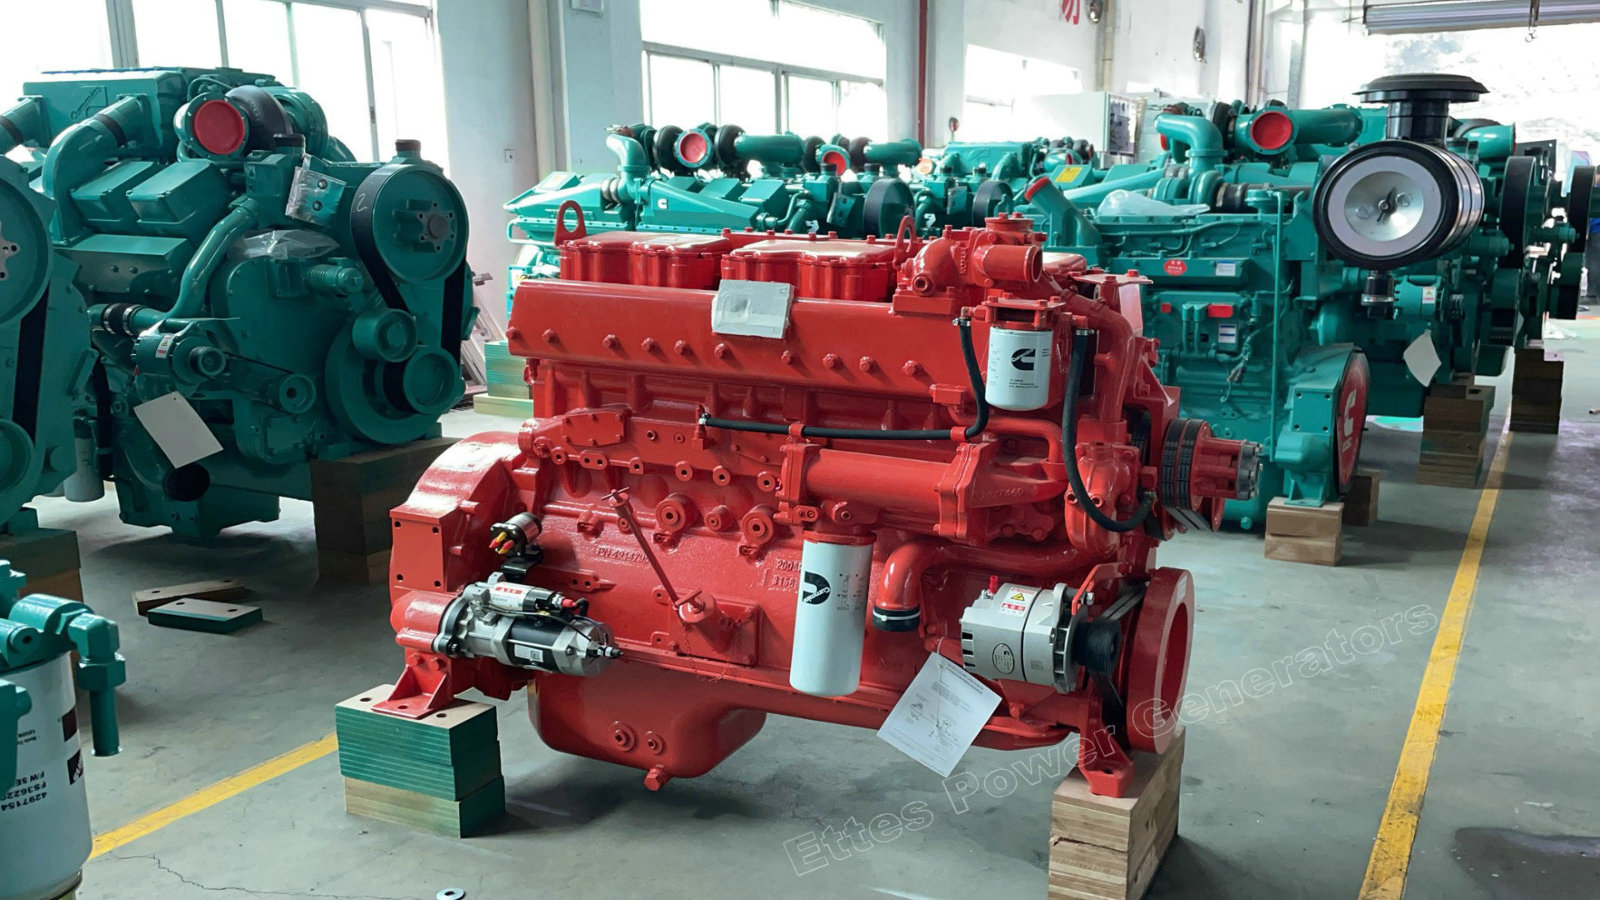 Cummins 200kW 300kW 500kW Engines available in Stock ETTES POWER